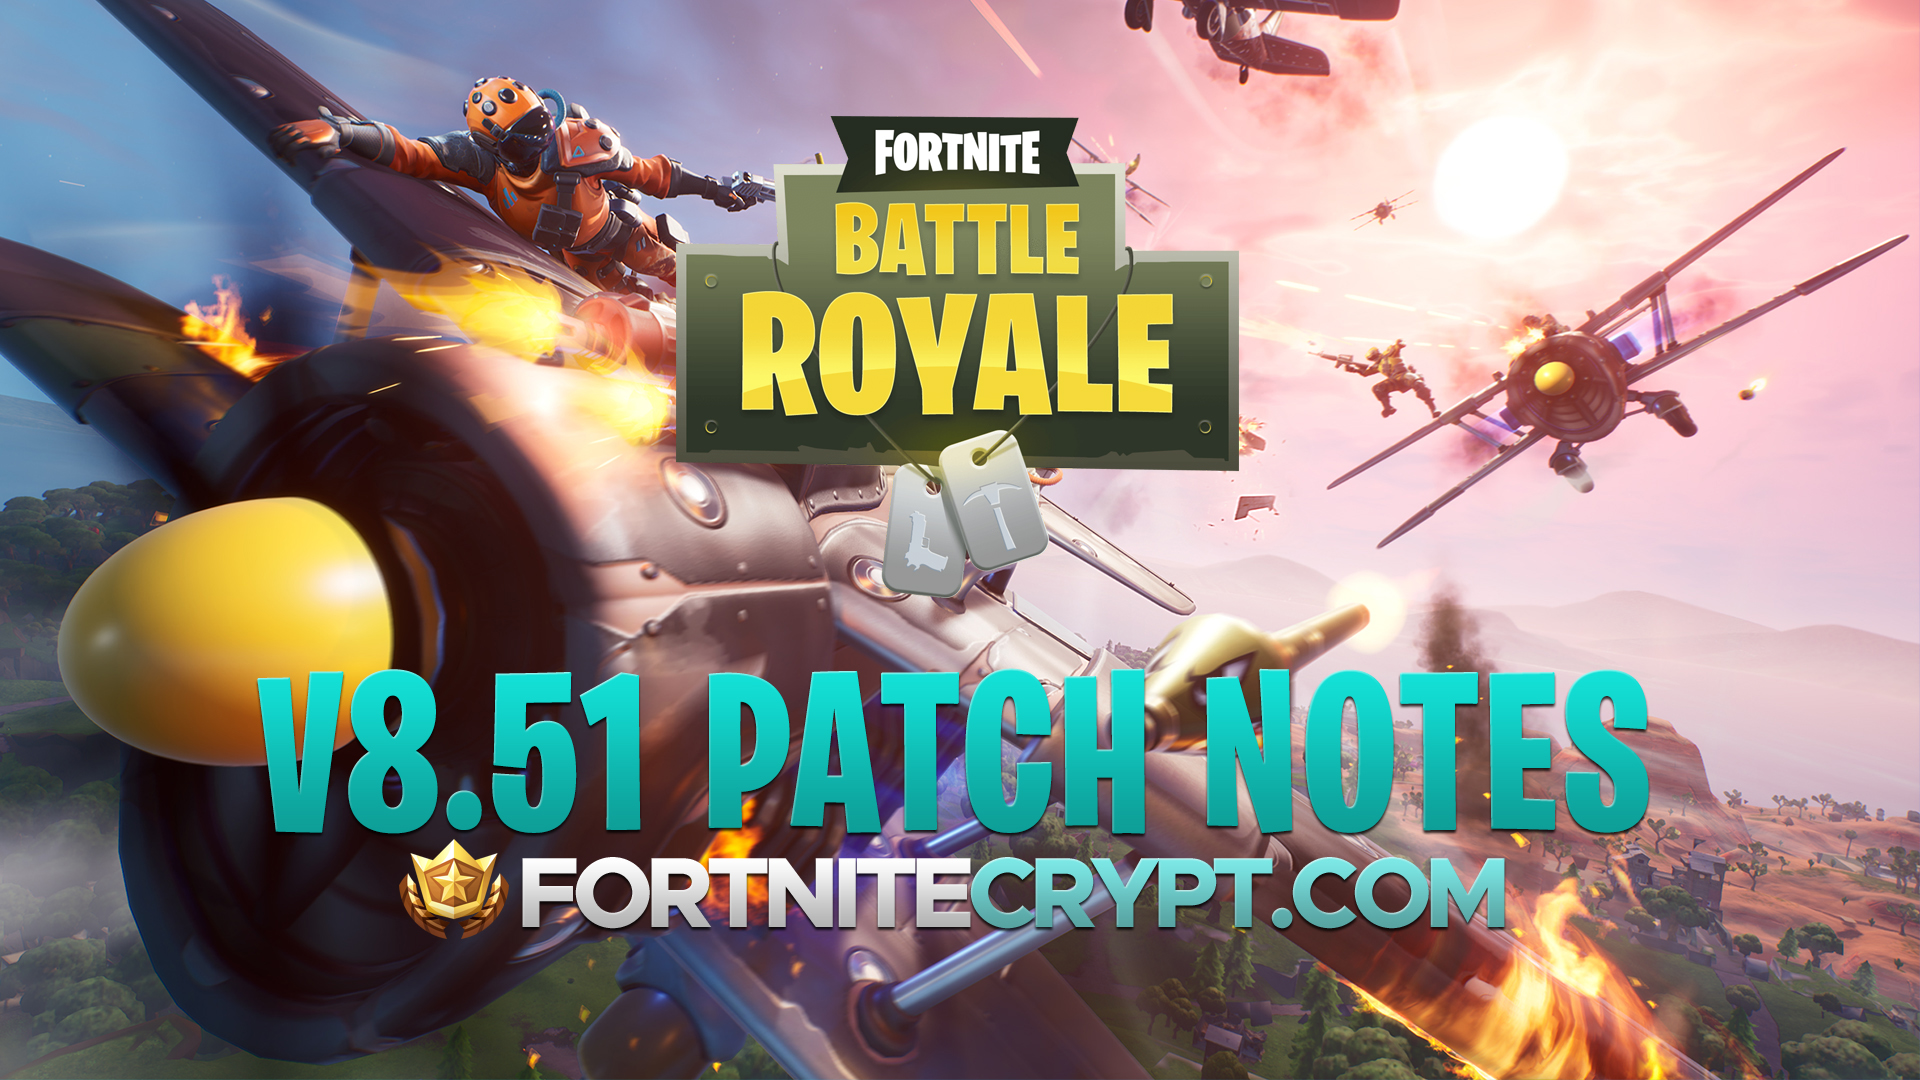 Fortnite Battle Royale V8 51 Patch Notes Shadow Bomb Bug Fixes